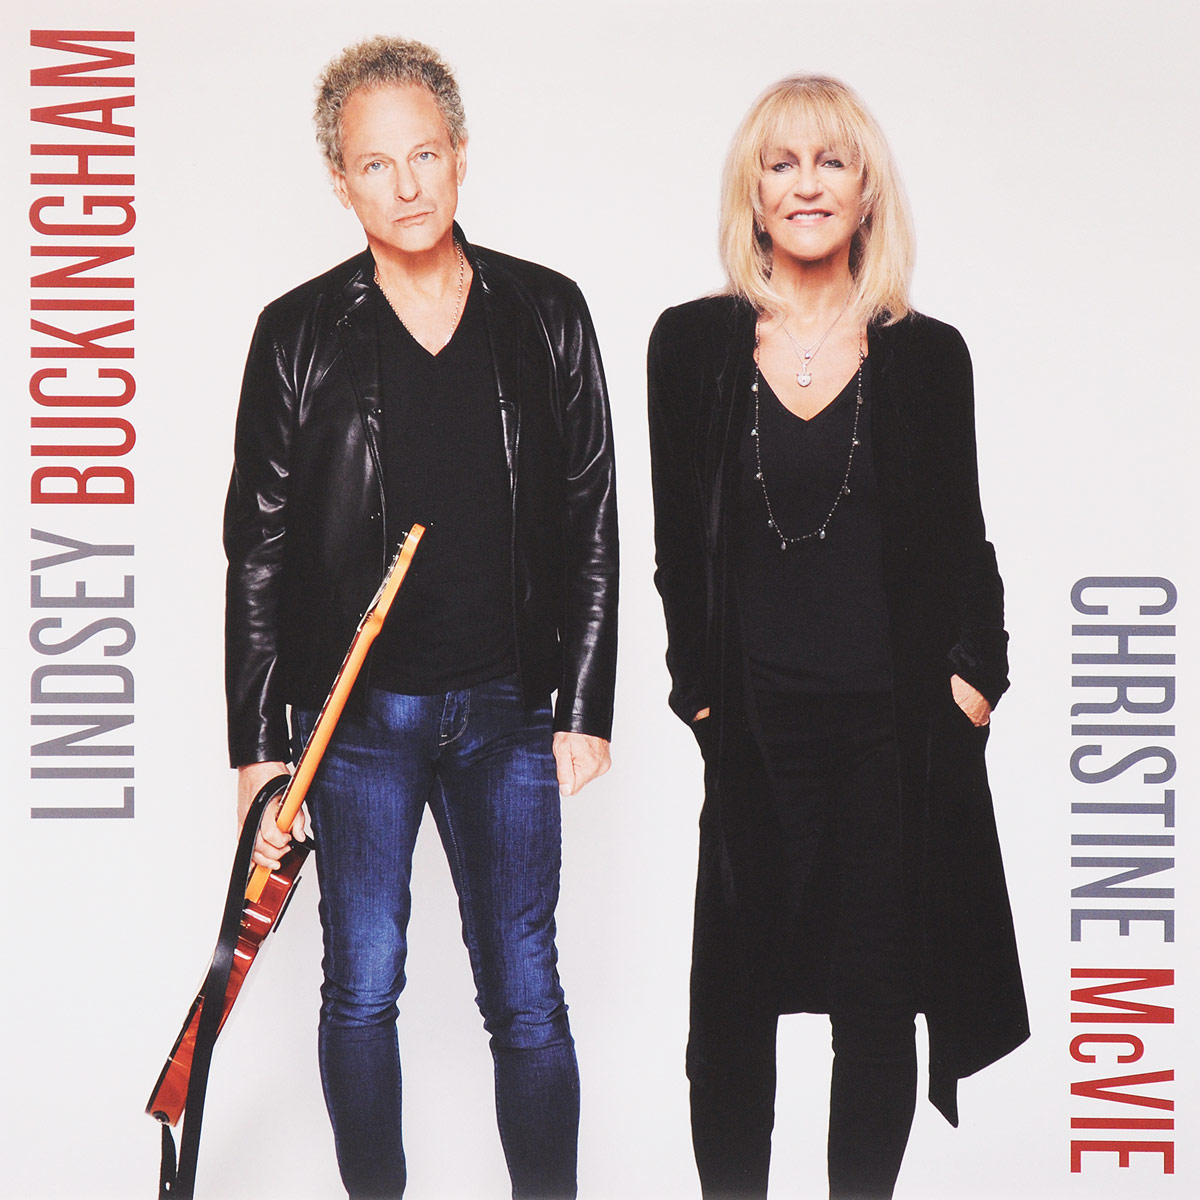 Линдси Бакингем,Кристин Макви Lindsey Buckingham, Christine McVie. Lindsey Buckingham, Christine McVie (LP)